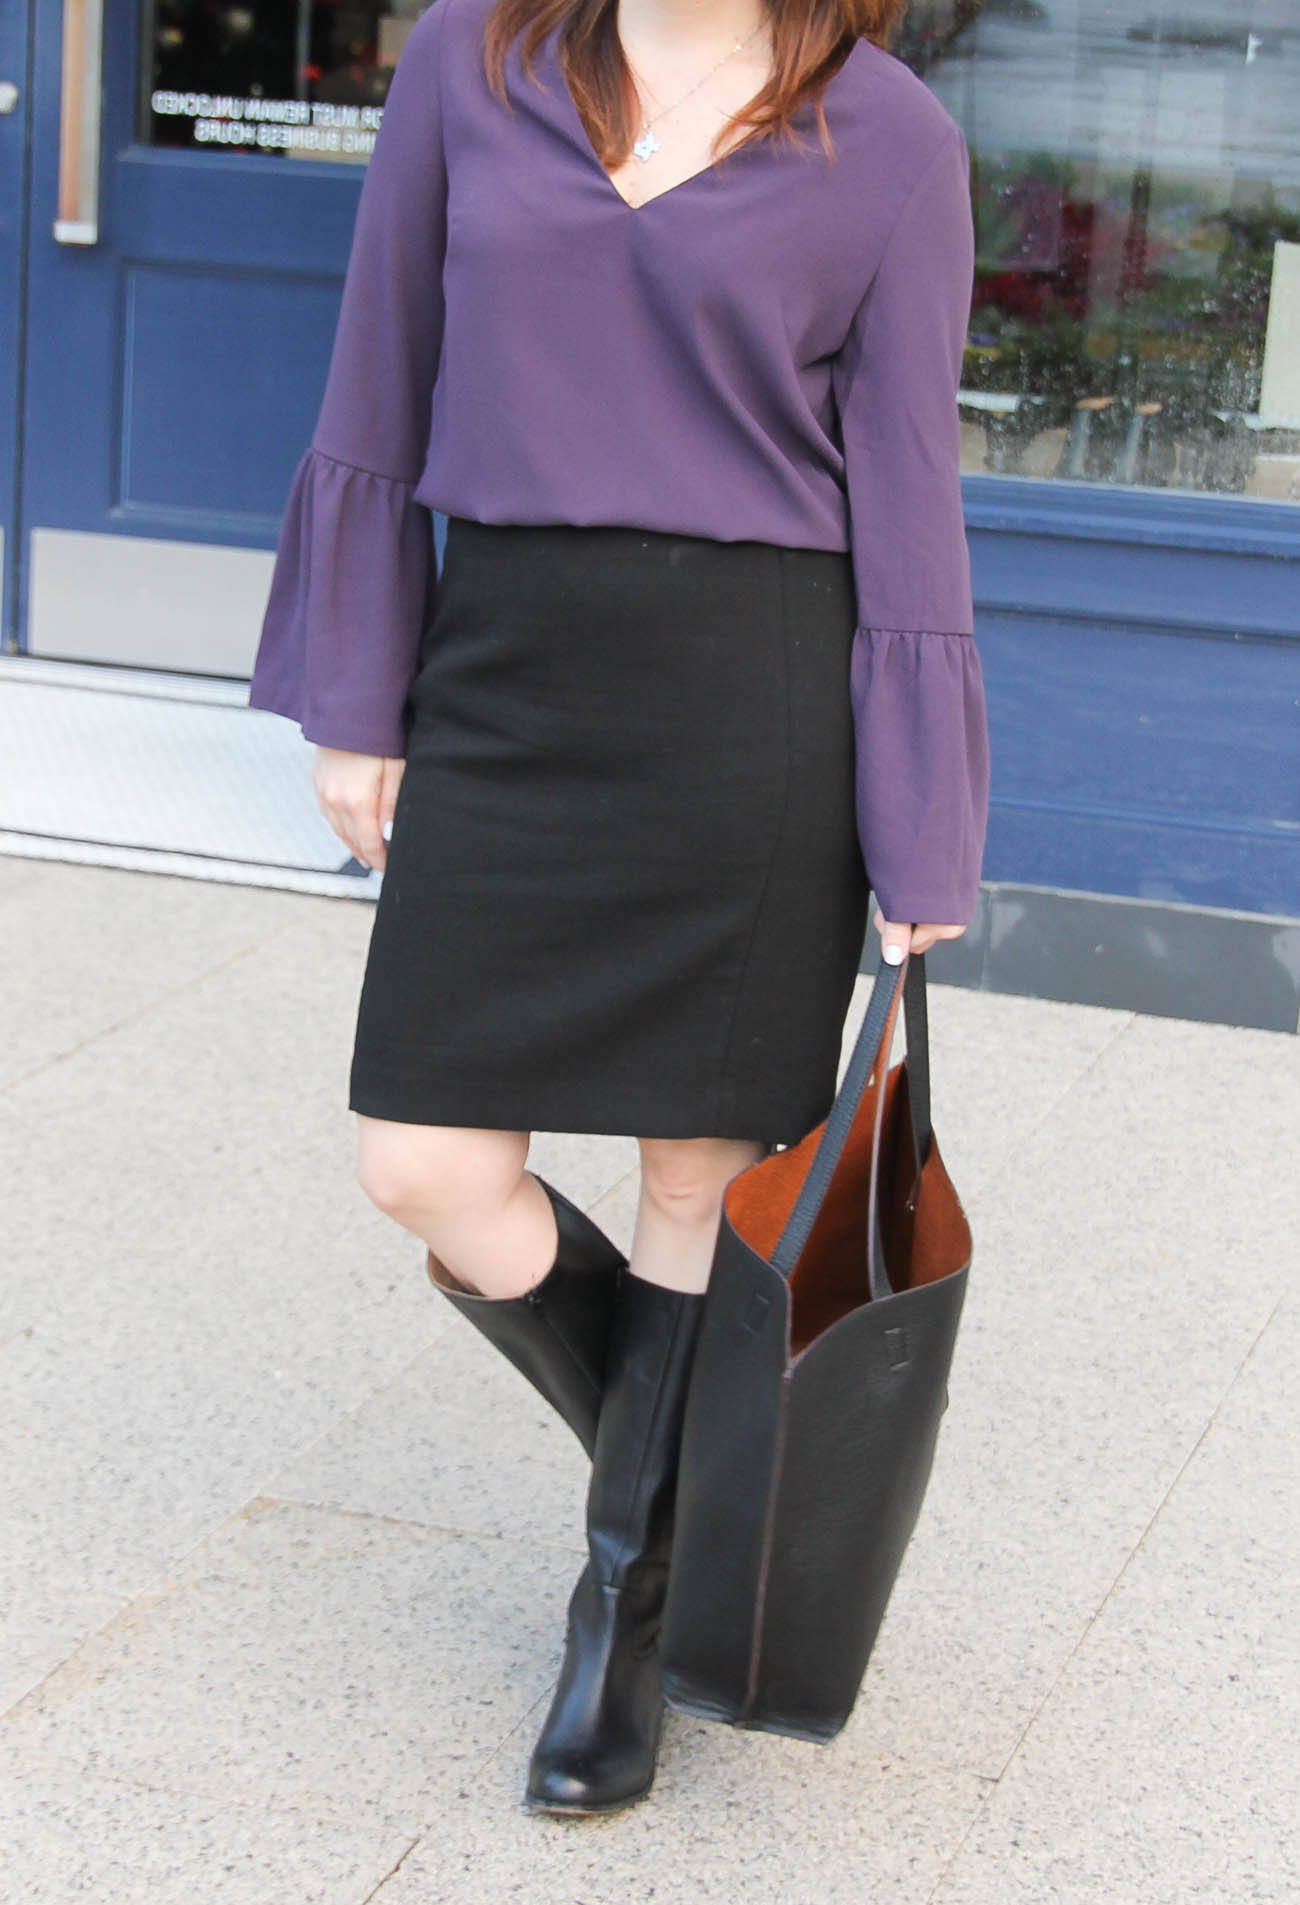 houston fashion in violet styles a work